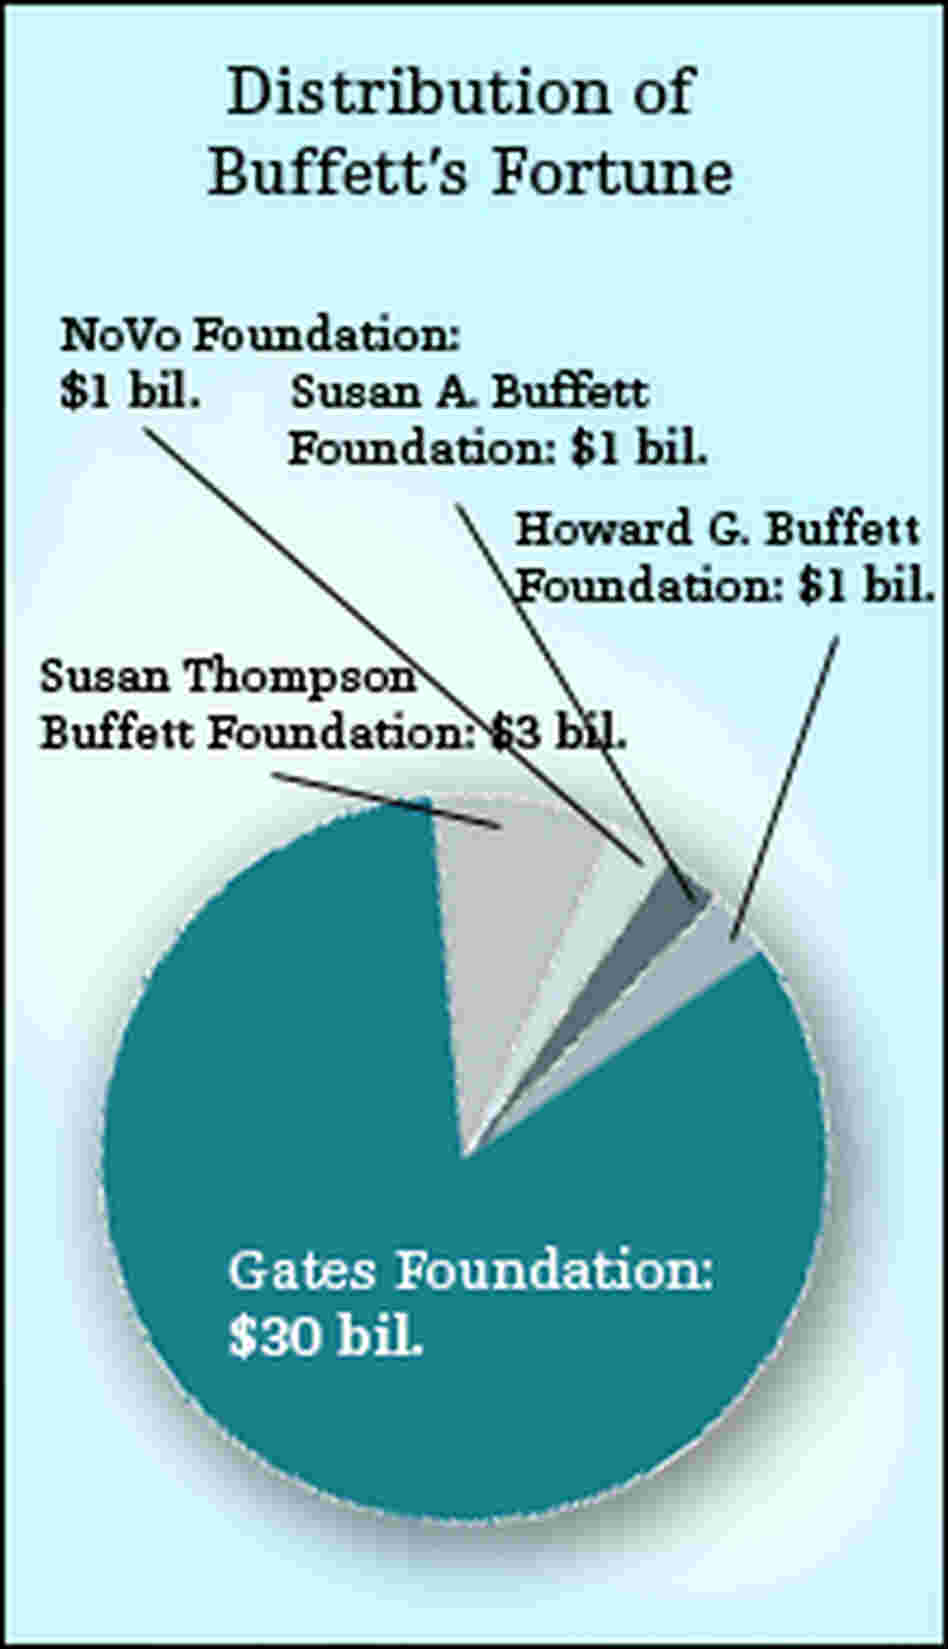 Chart showing current value of Buffet gifts, estimated around $37 billion.